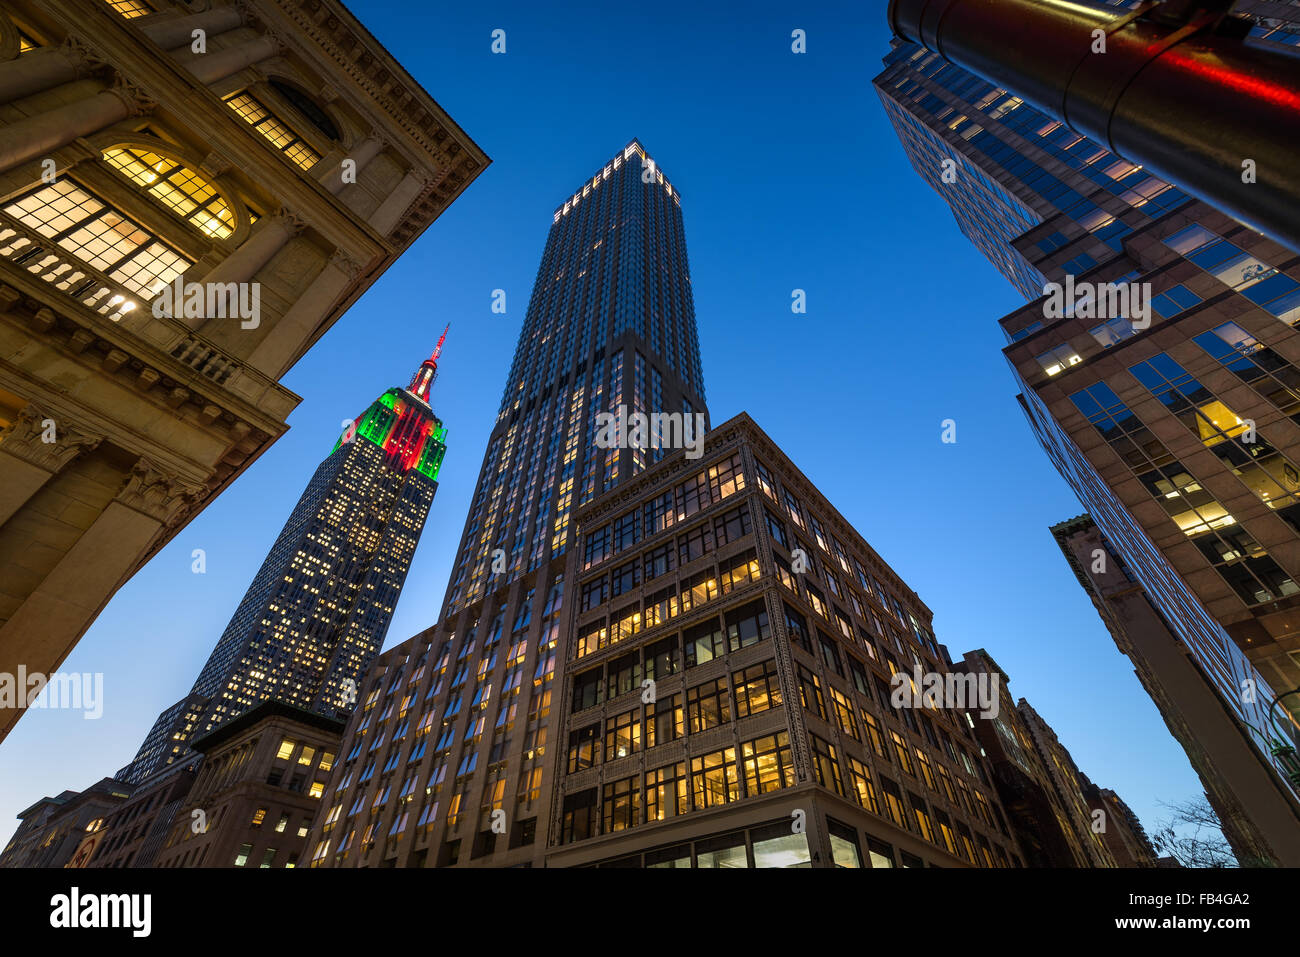 The Empire State Building illuminated with Christmas lights at twilight. Skyscrapers on 5th Avenue, Midtown Manhattan, - Stock Image